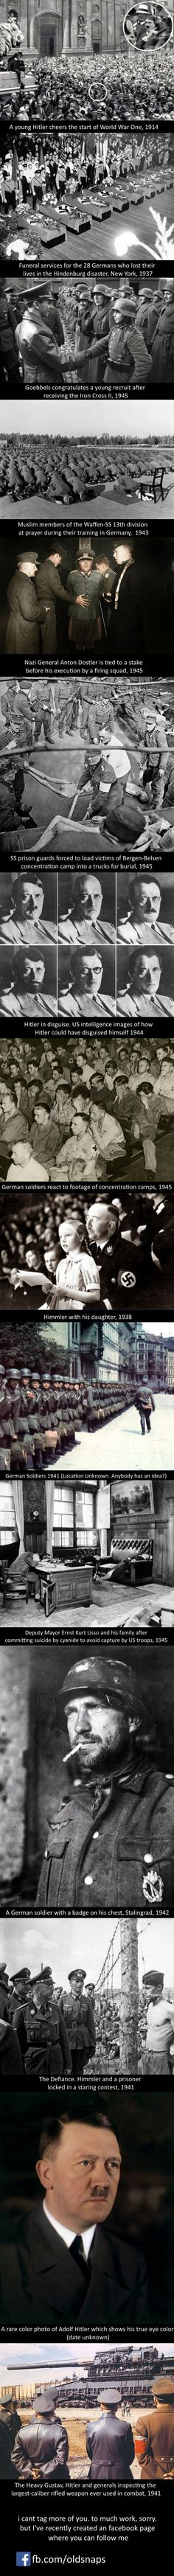 Old snaps you have to see. Part 13. NAZIS